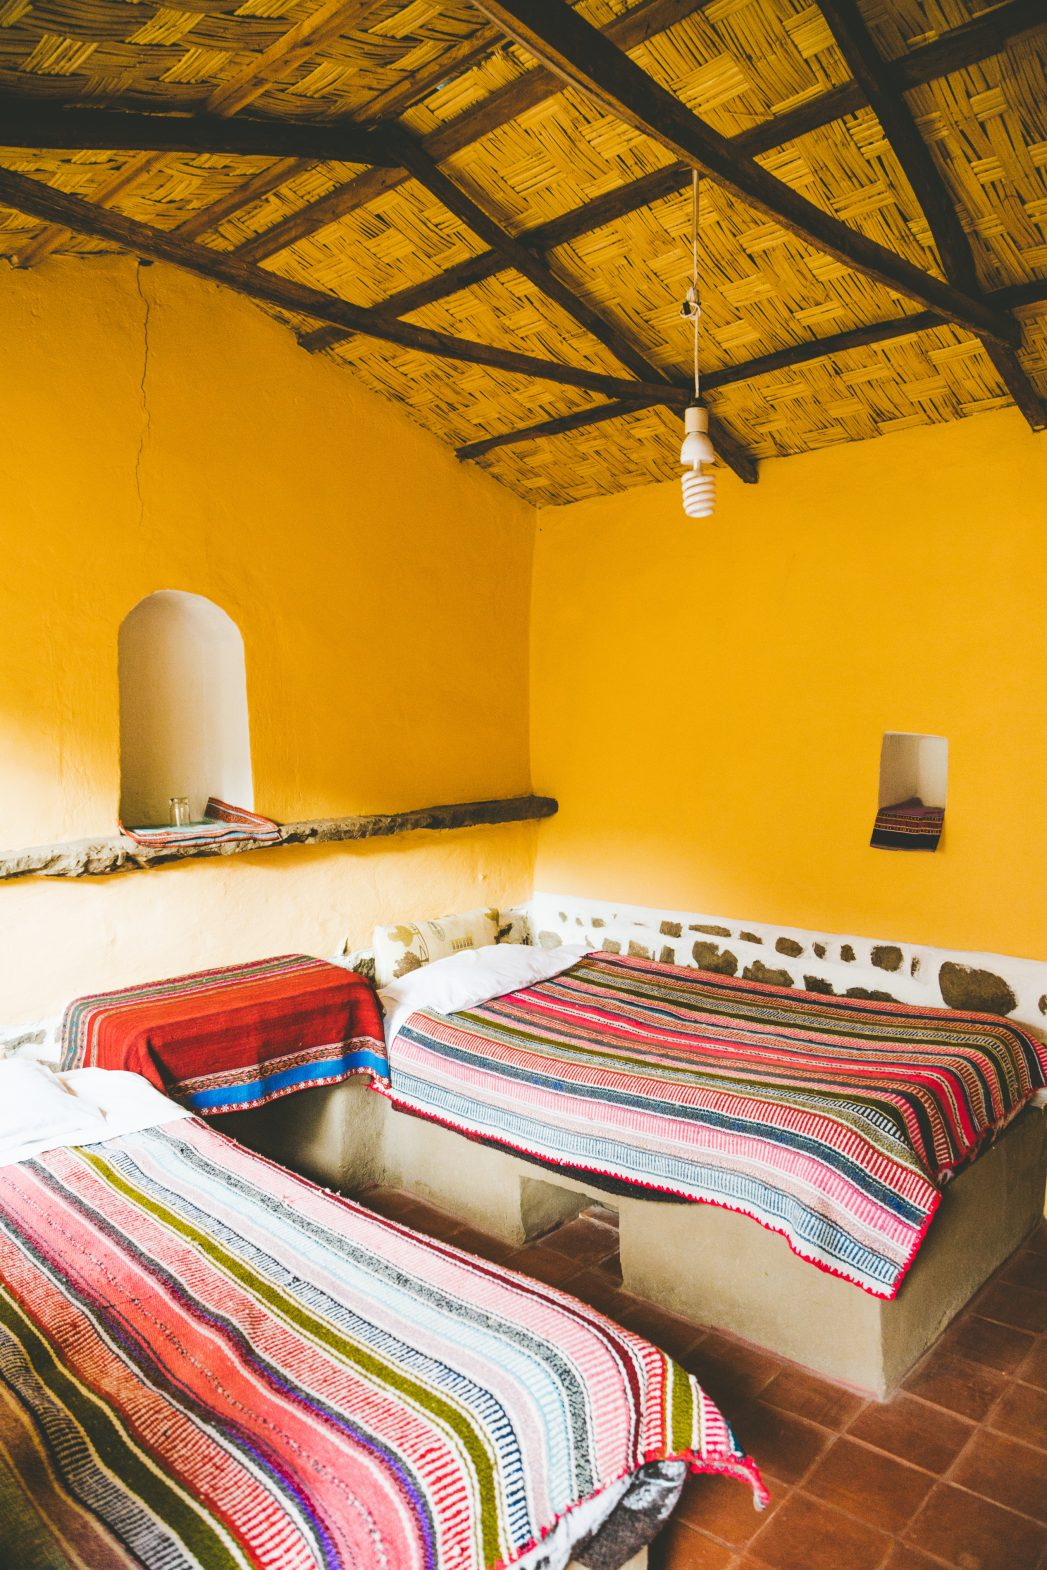 Interior of the homestay with beds covered in traditional colorful blankets and the walls a warm shade of yellow.